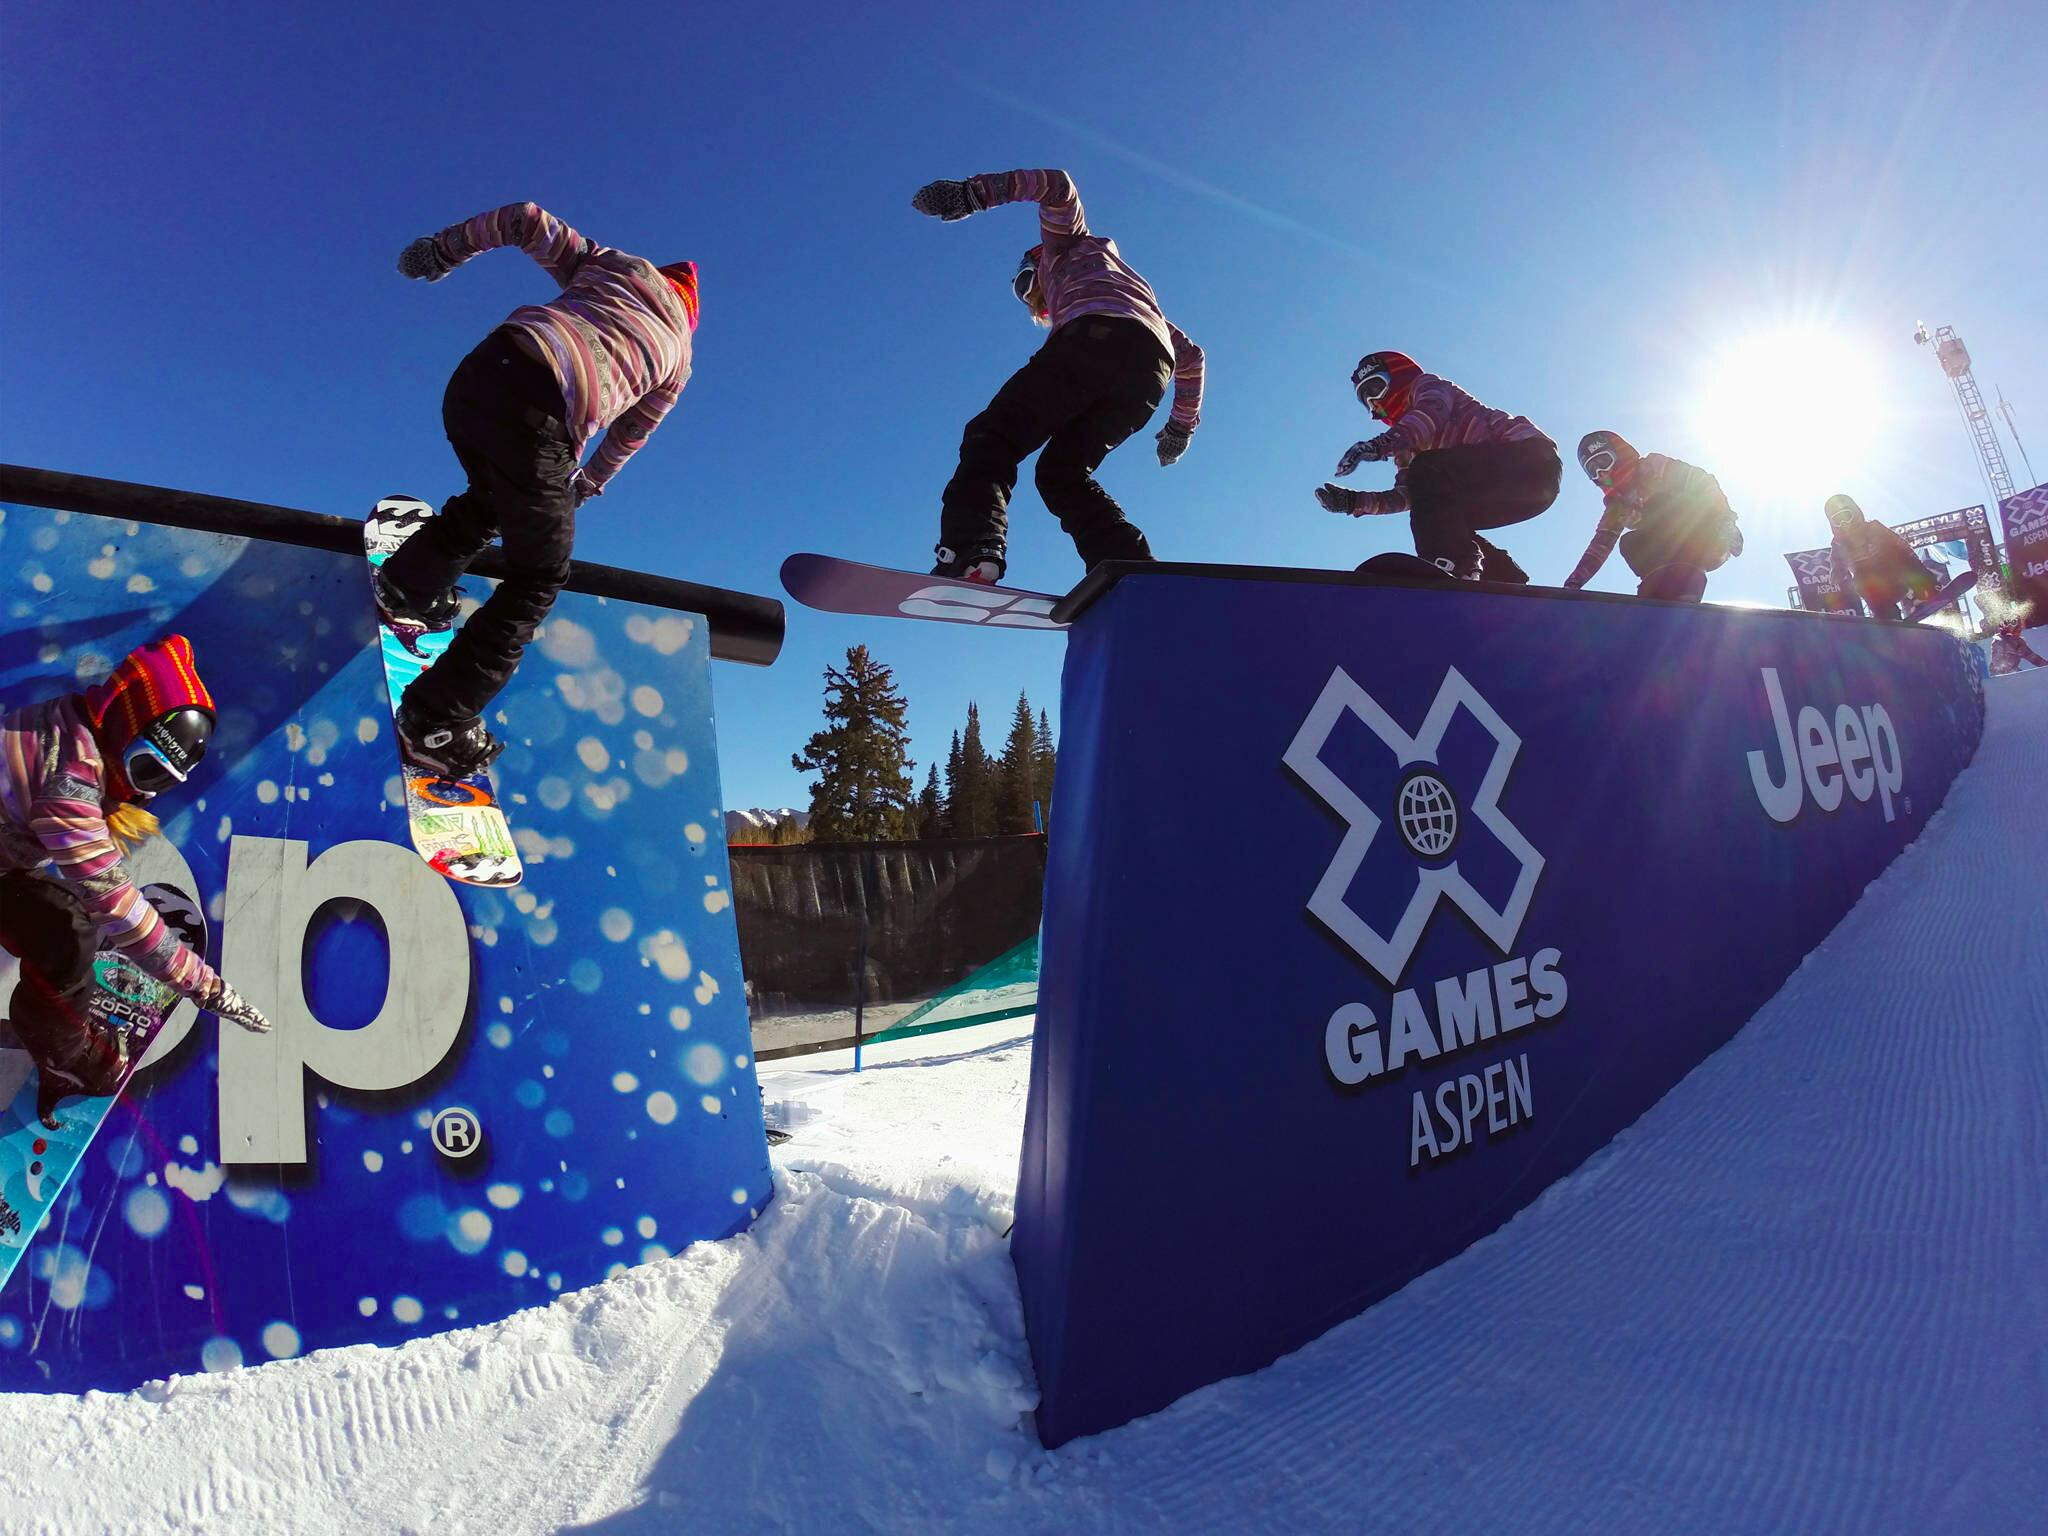 Photo of the Day! GoPro athlete @Jme_Anderson completes a clean transition on the Slopestyle course at #XGames2014. http://t.co/w85pbLvHtp